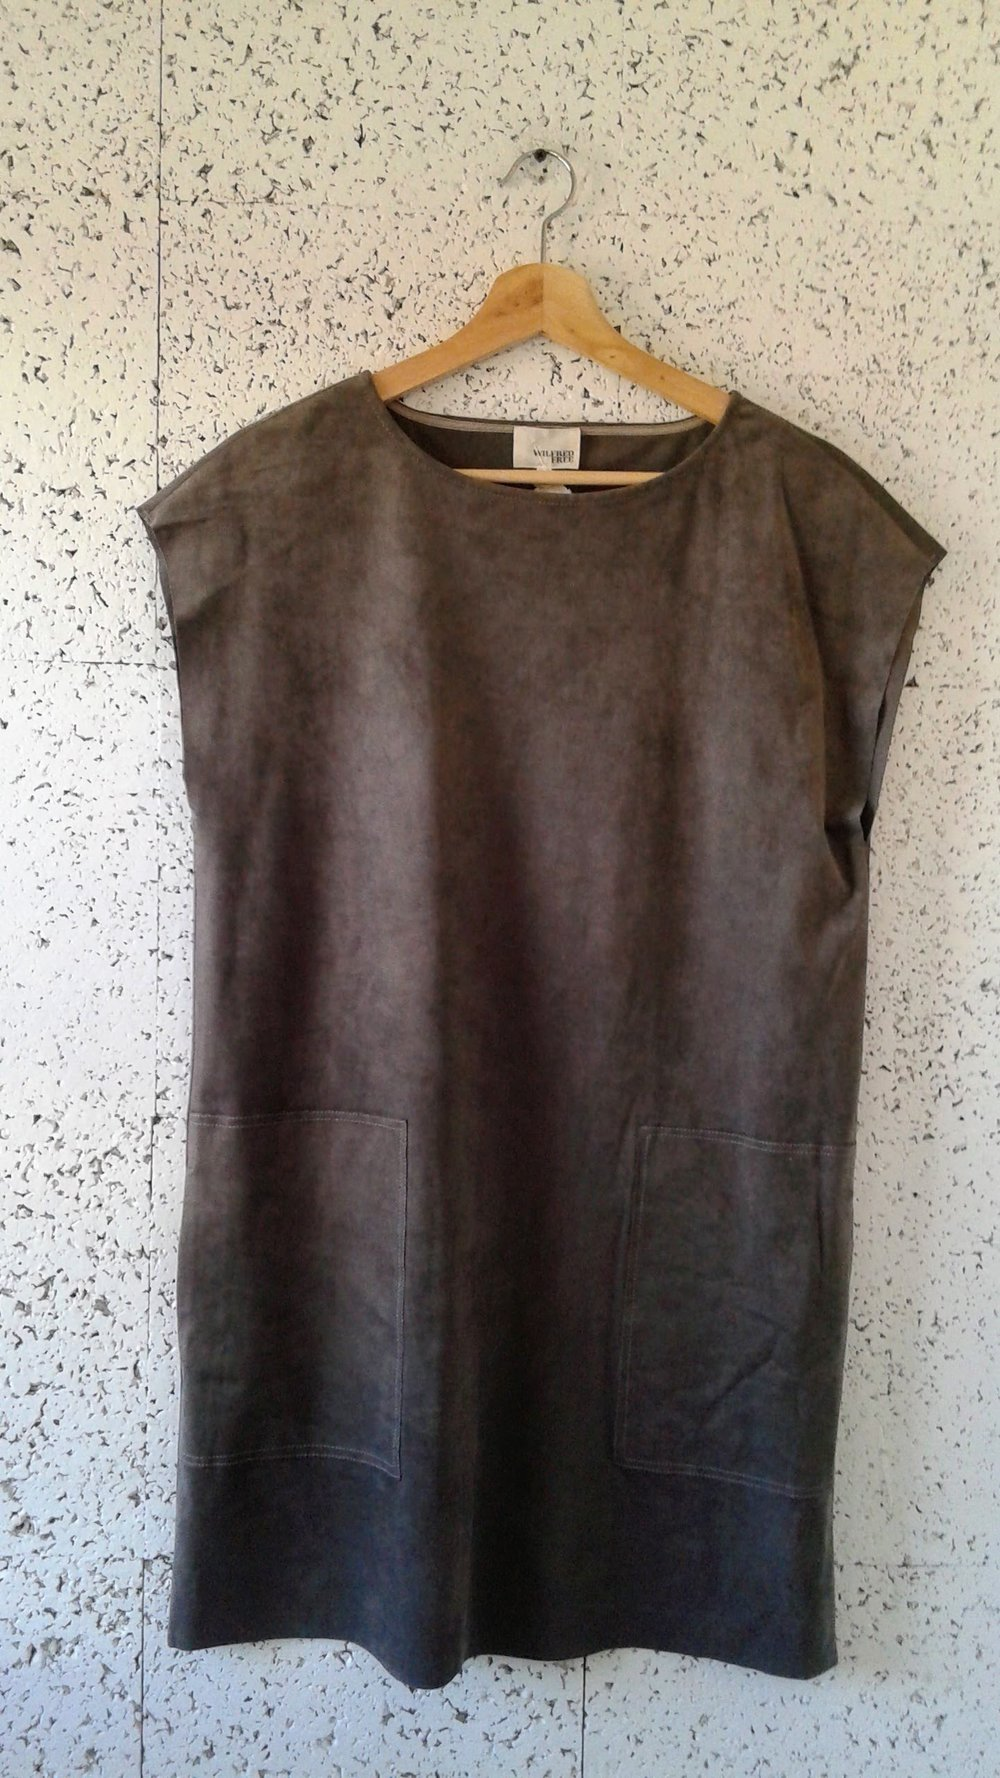 Wilfred dress (NWT); Size S, $46